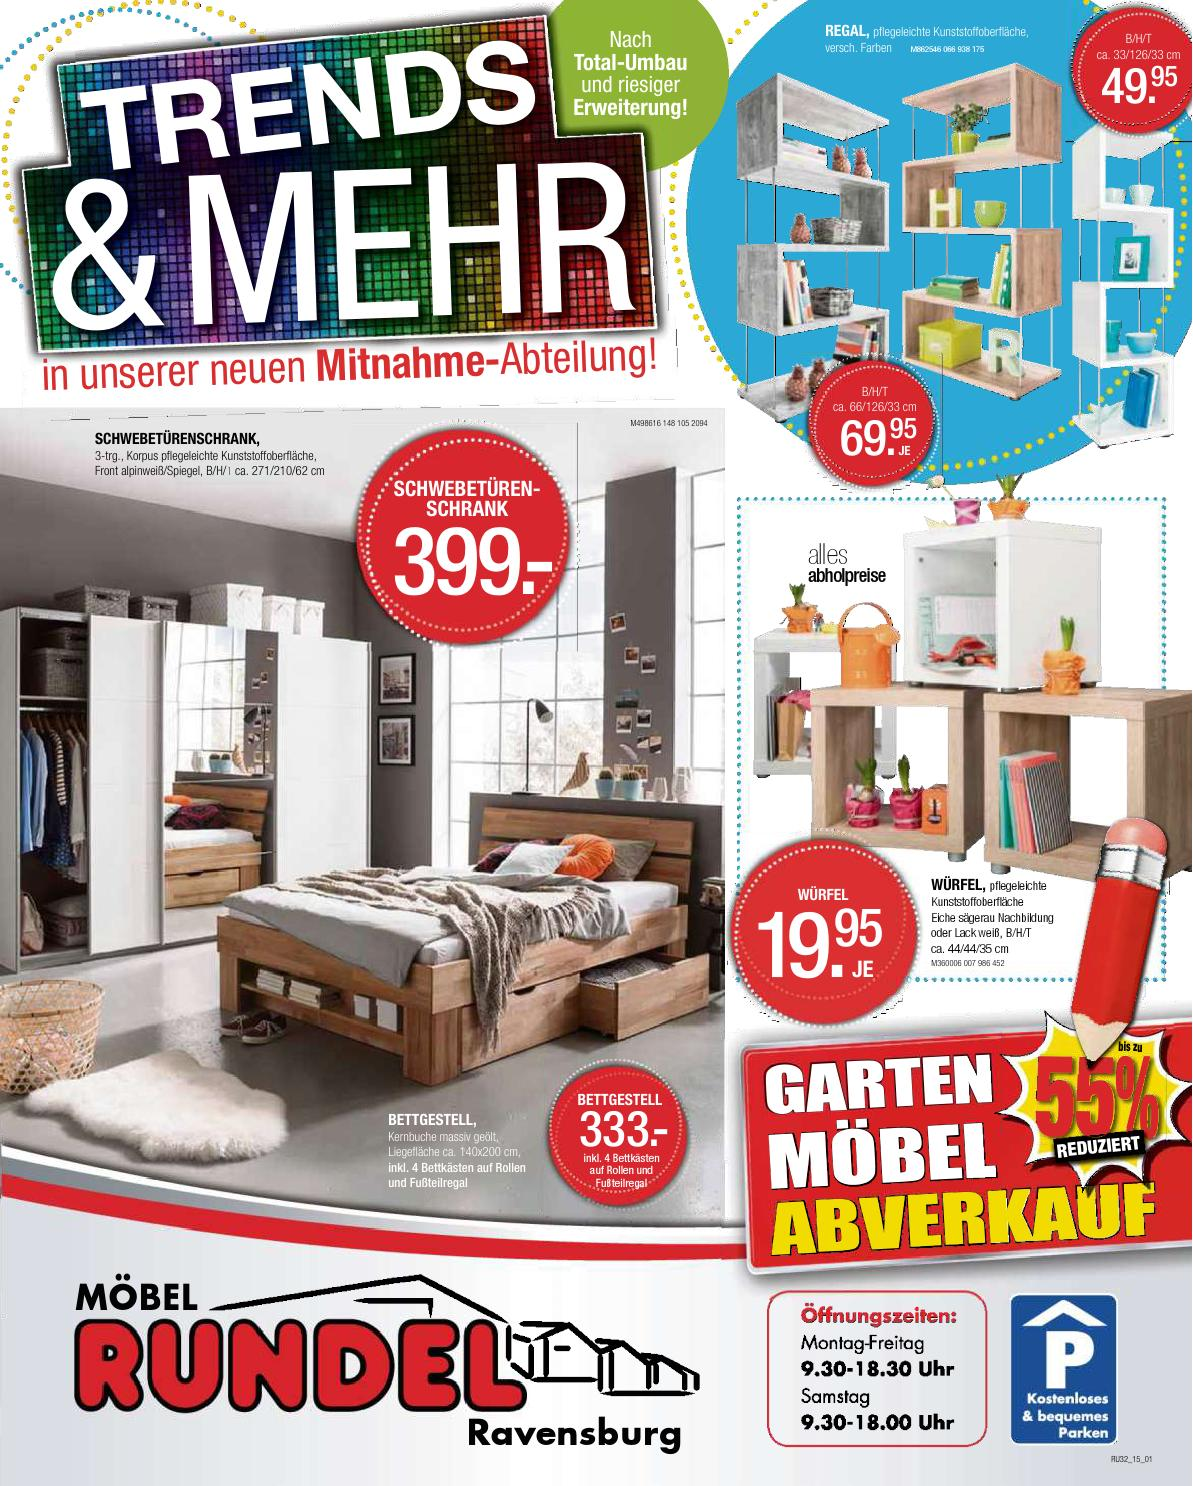 moebel rundel 1 kw32 by russmedia digital gmbh issuu. Black Bedroom Furniture Sets. Home Design Ideas